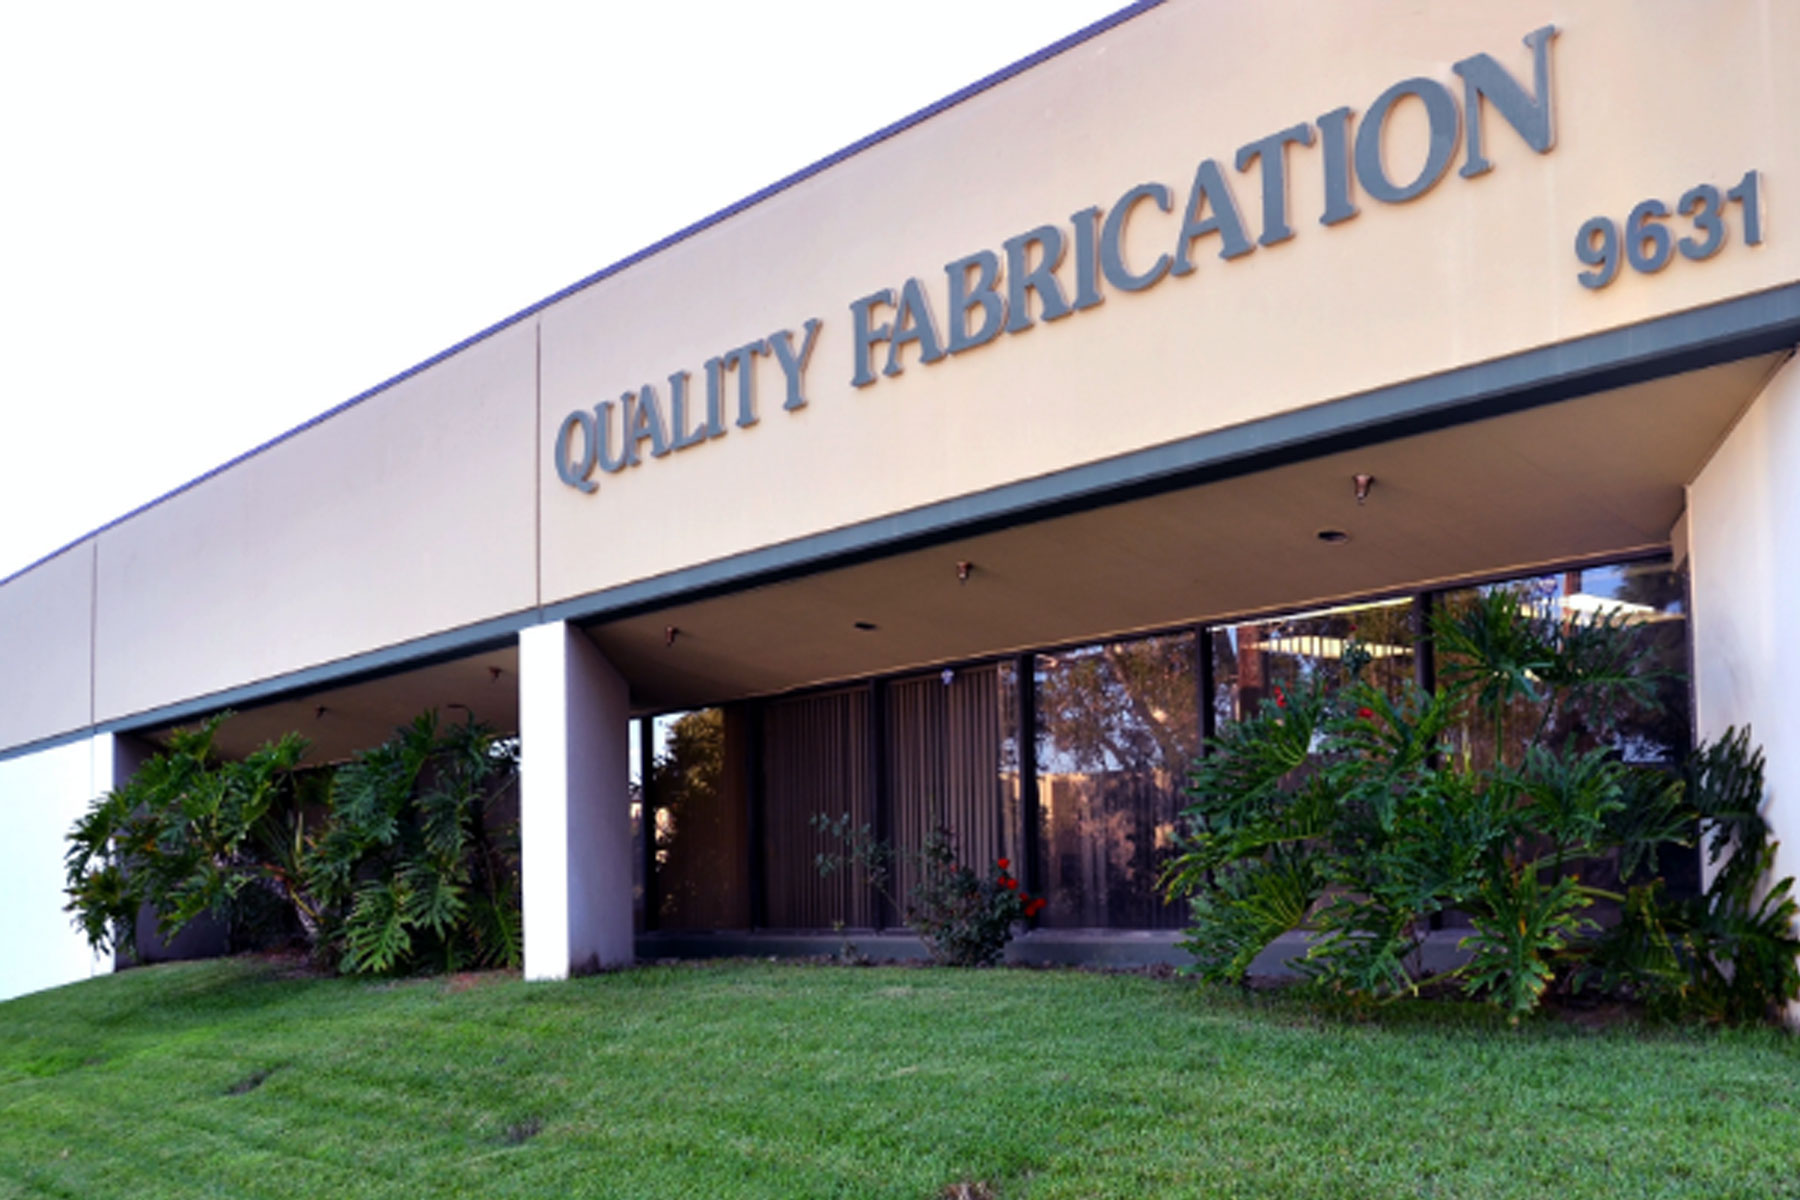 Canerector Acquires Quality Fabrication Inc.